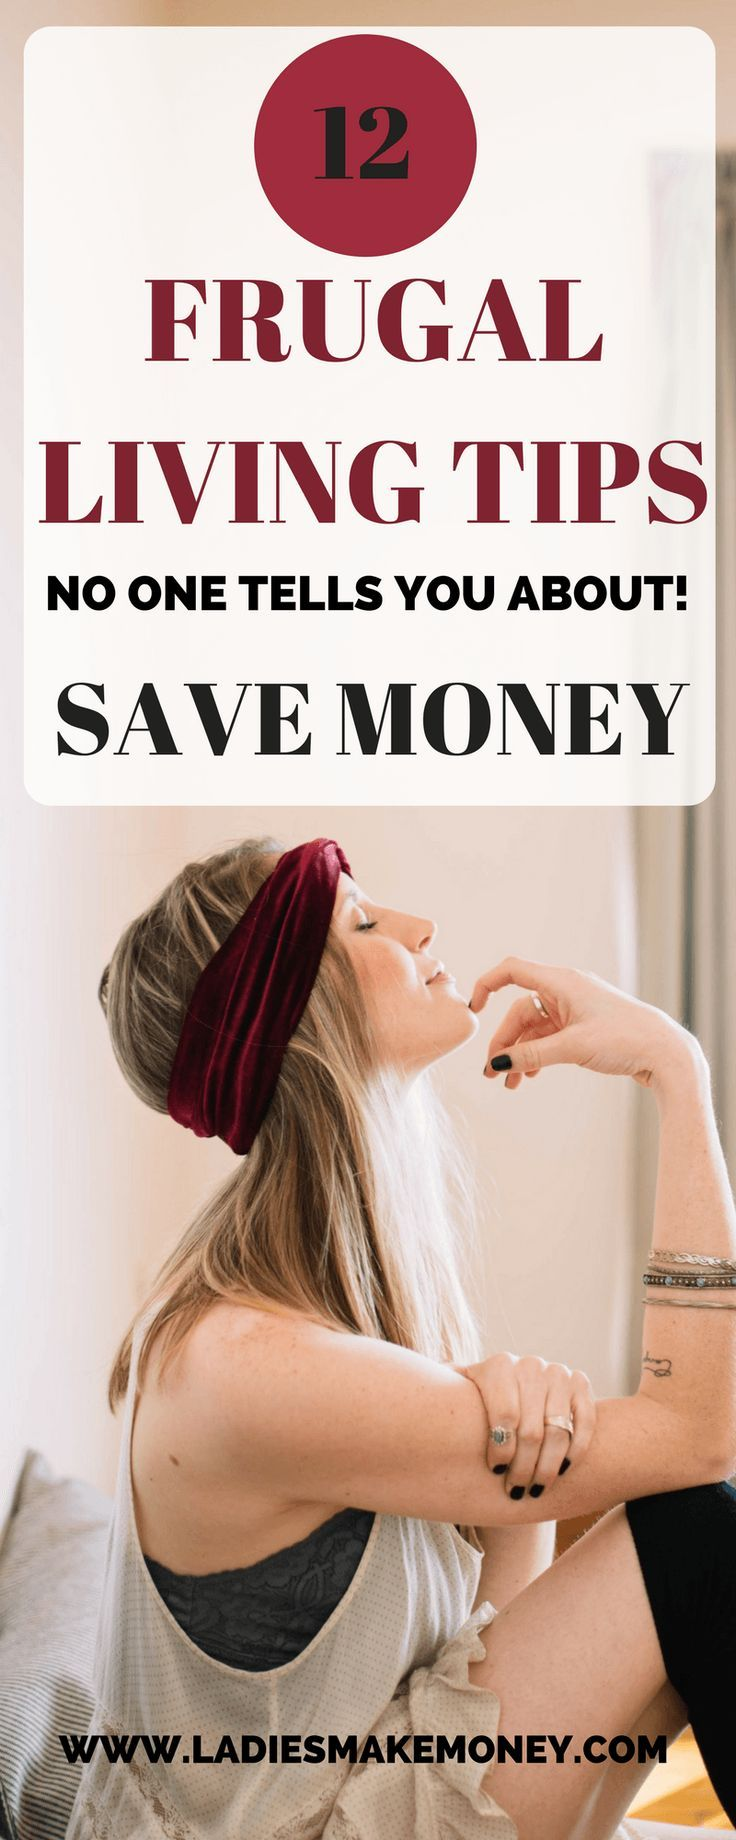 Tips that the frugal don't share about saving money. Learn how you can save money, pay bills and continue to grow your bank account. How to live super frugally and to save money. Extreme frugality tips that will help those on the budget and save money. Th